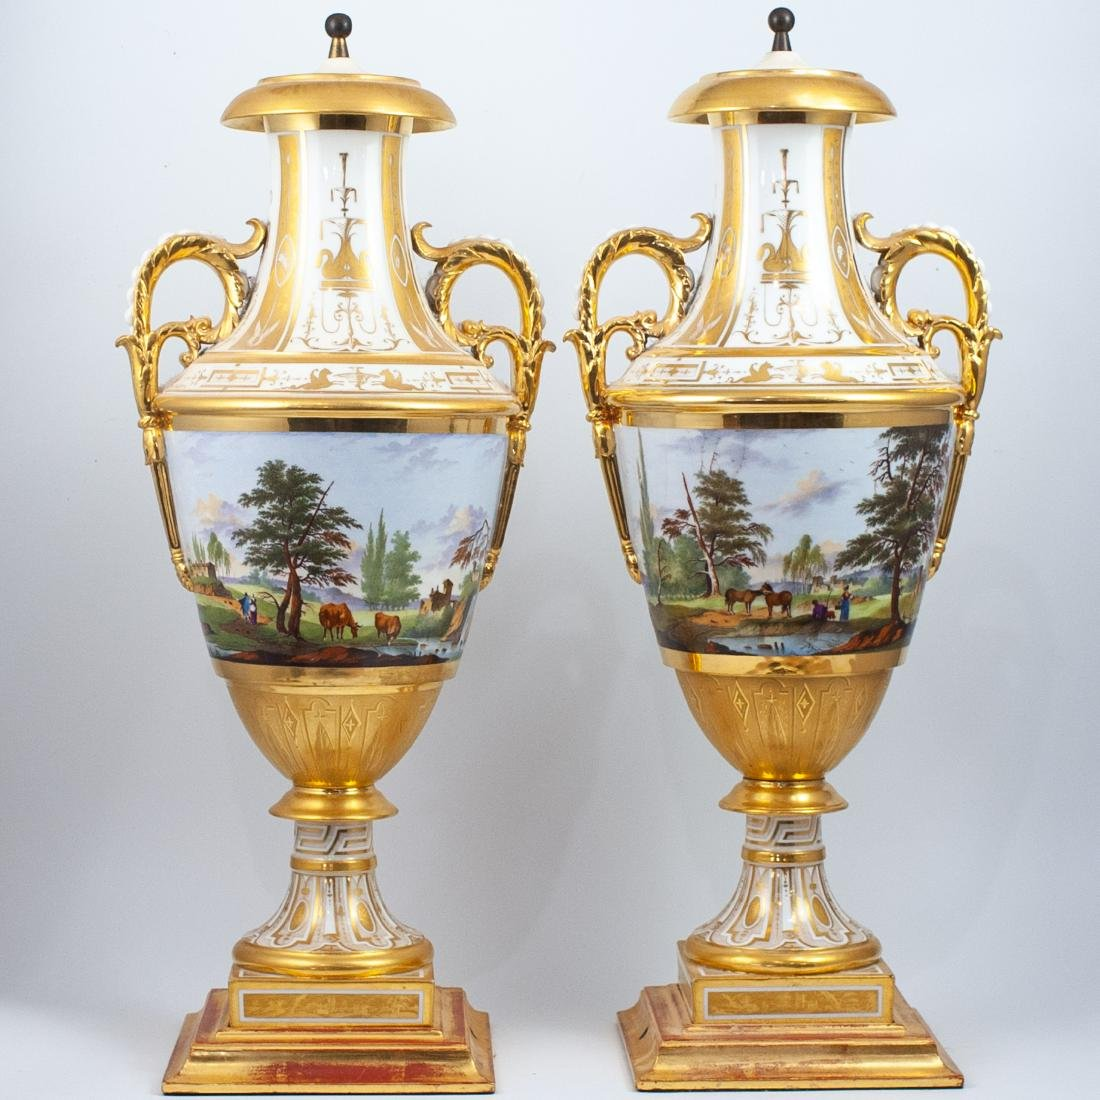 Pair Of 19th Cent. Sevres Porcelain Urns